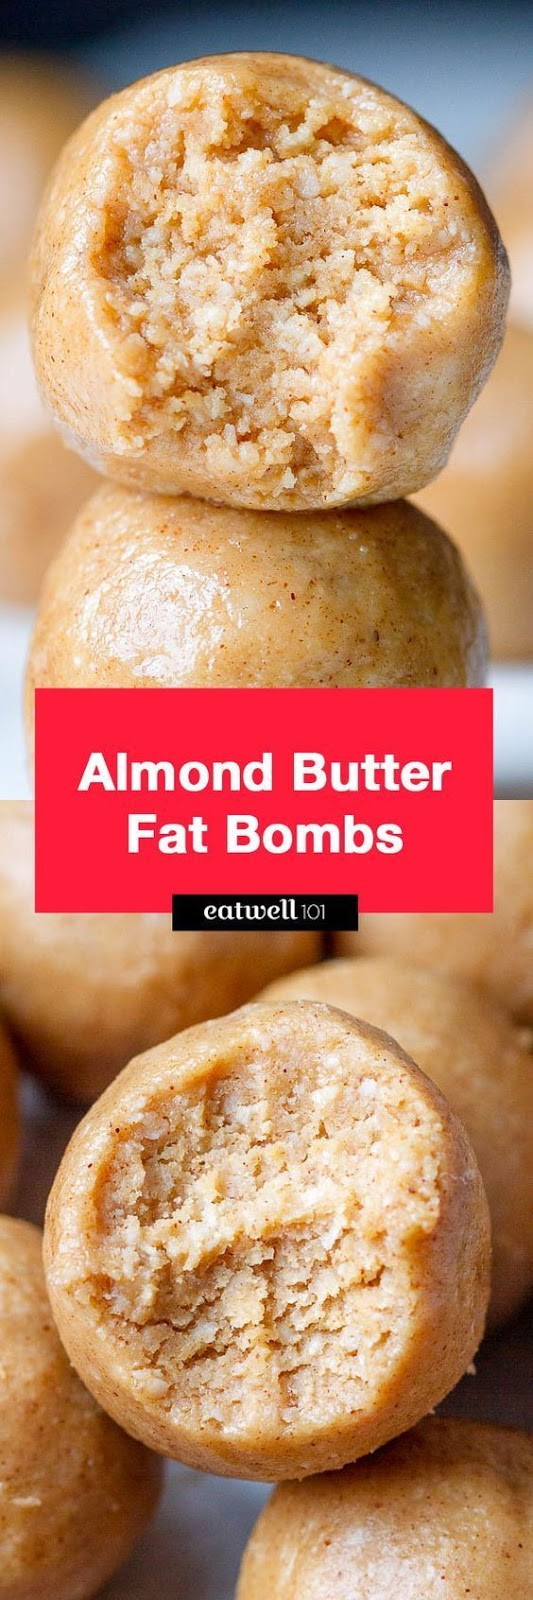 3-Ingredient Almond Butter Fat Bombs